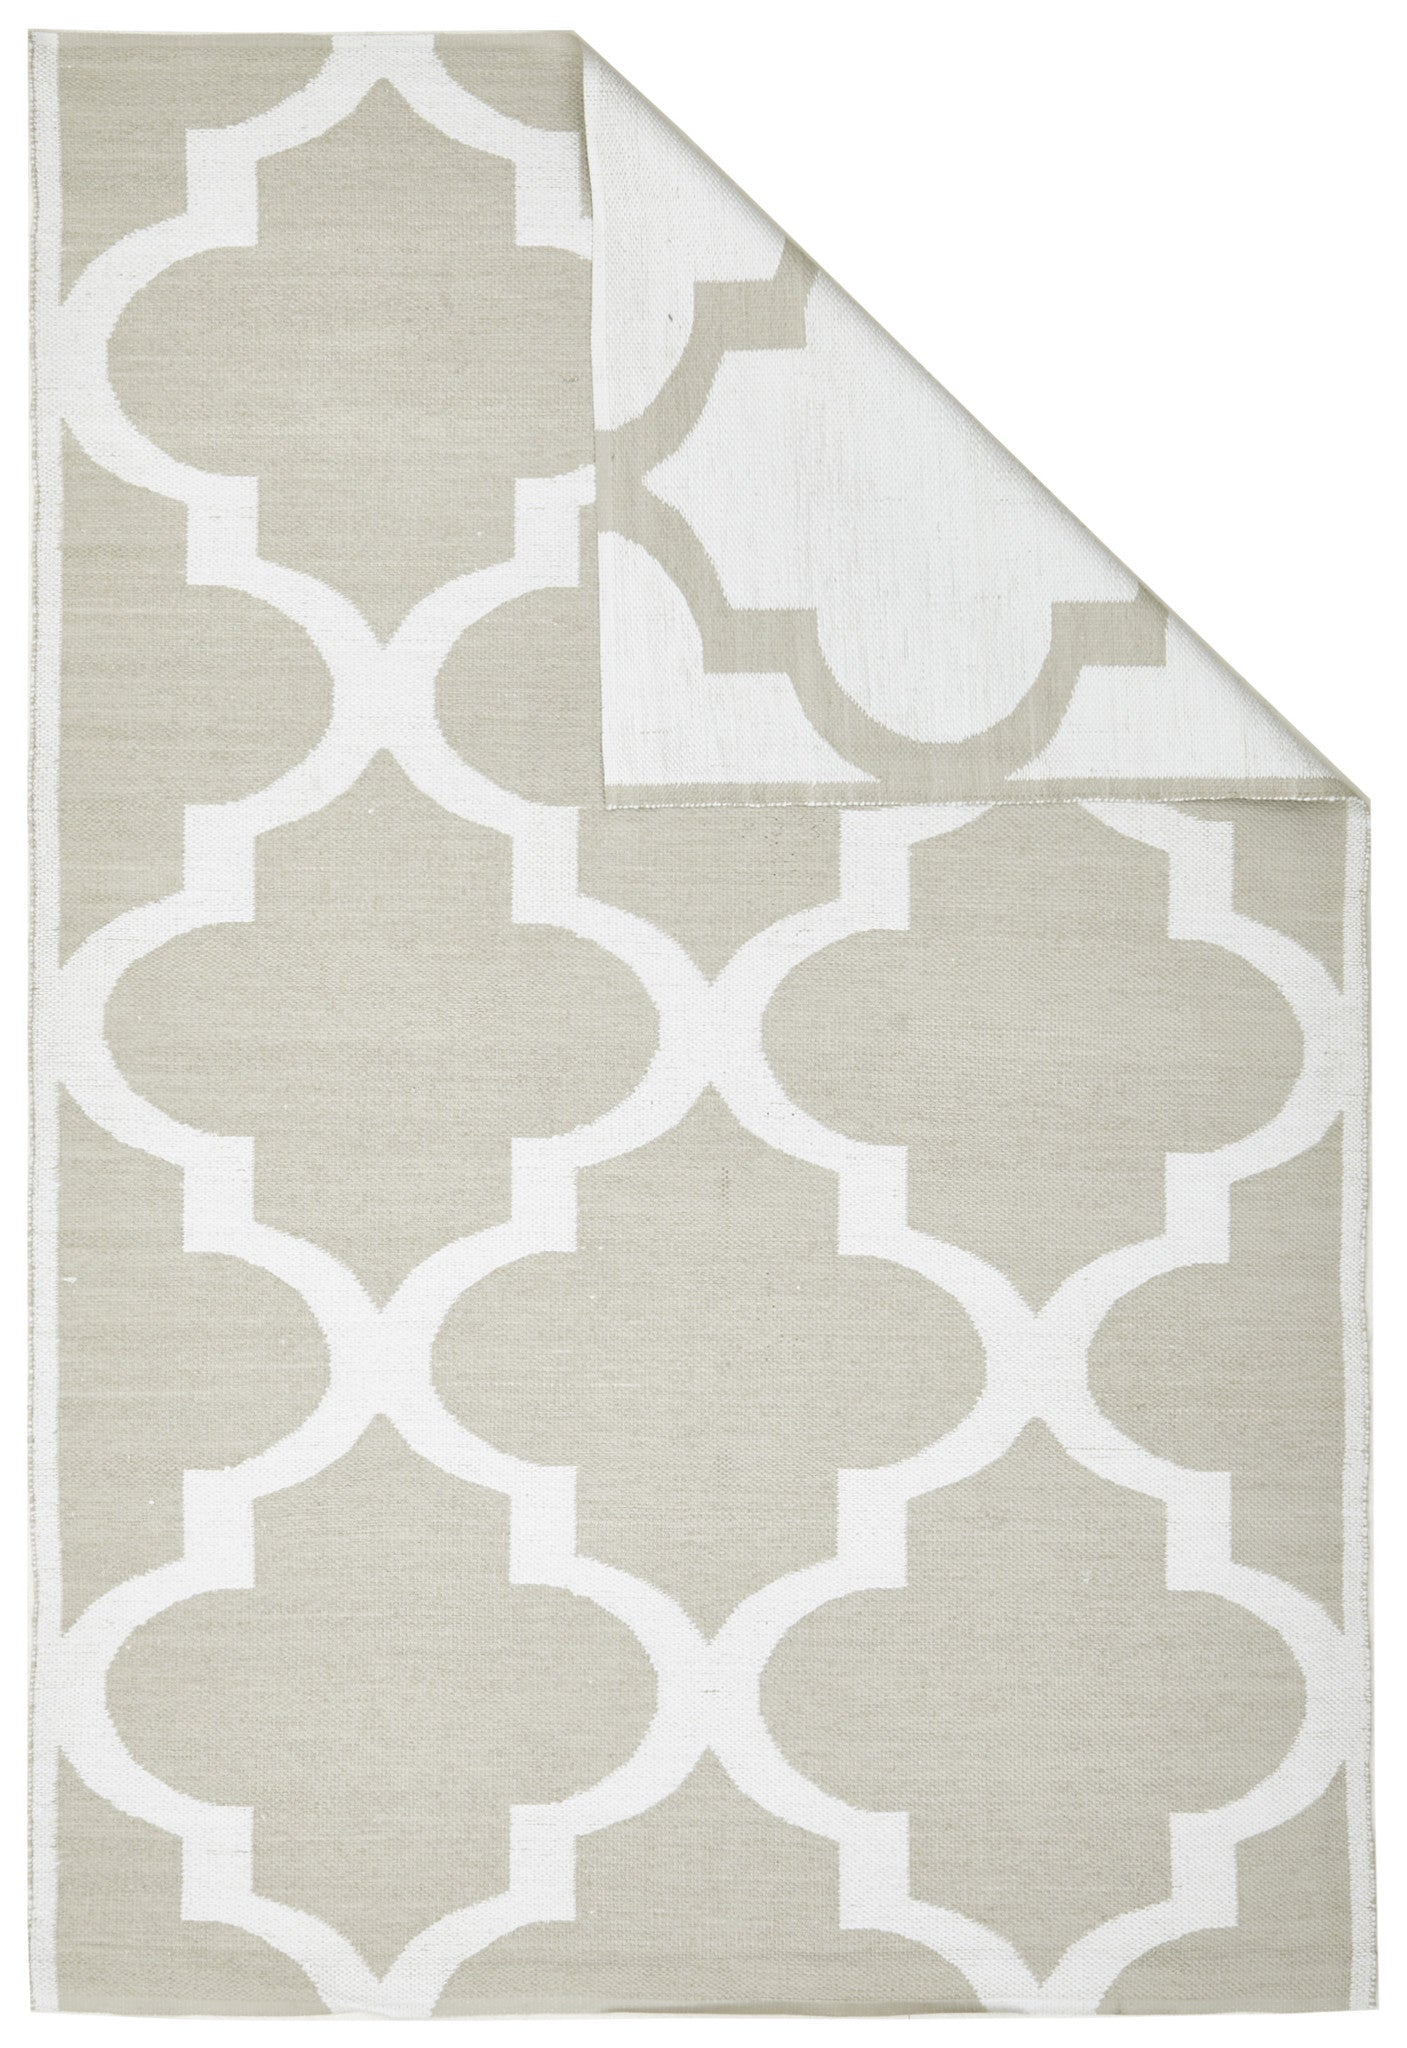 Coastal Indoor Out door Rug Trellis Taupe White